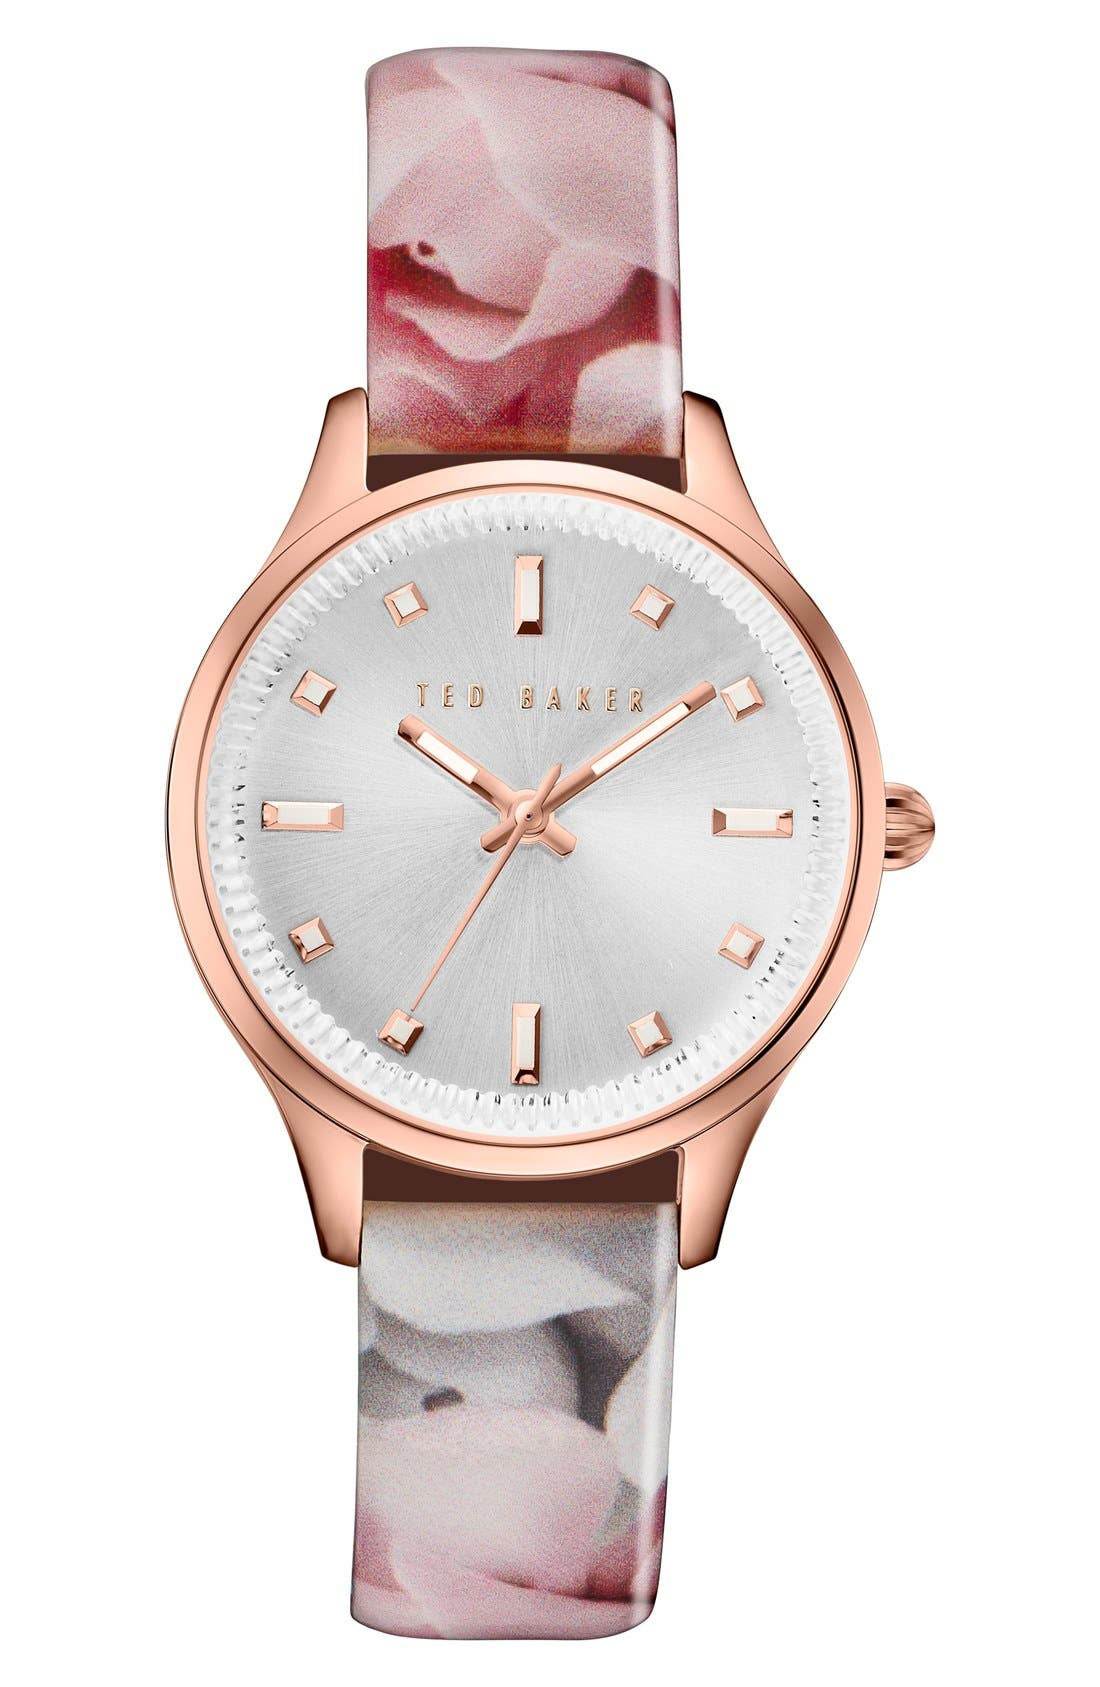 TED BAKER LONDON Dress Sport Patent Leather Strap Watch, 32mm